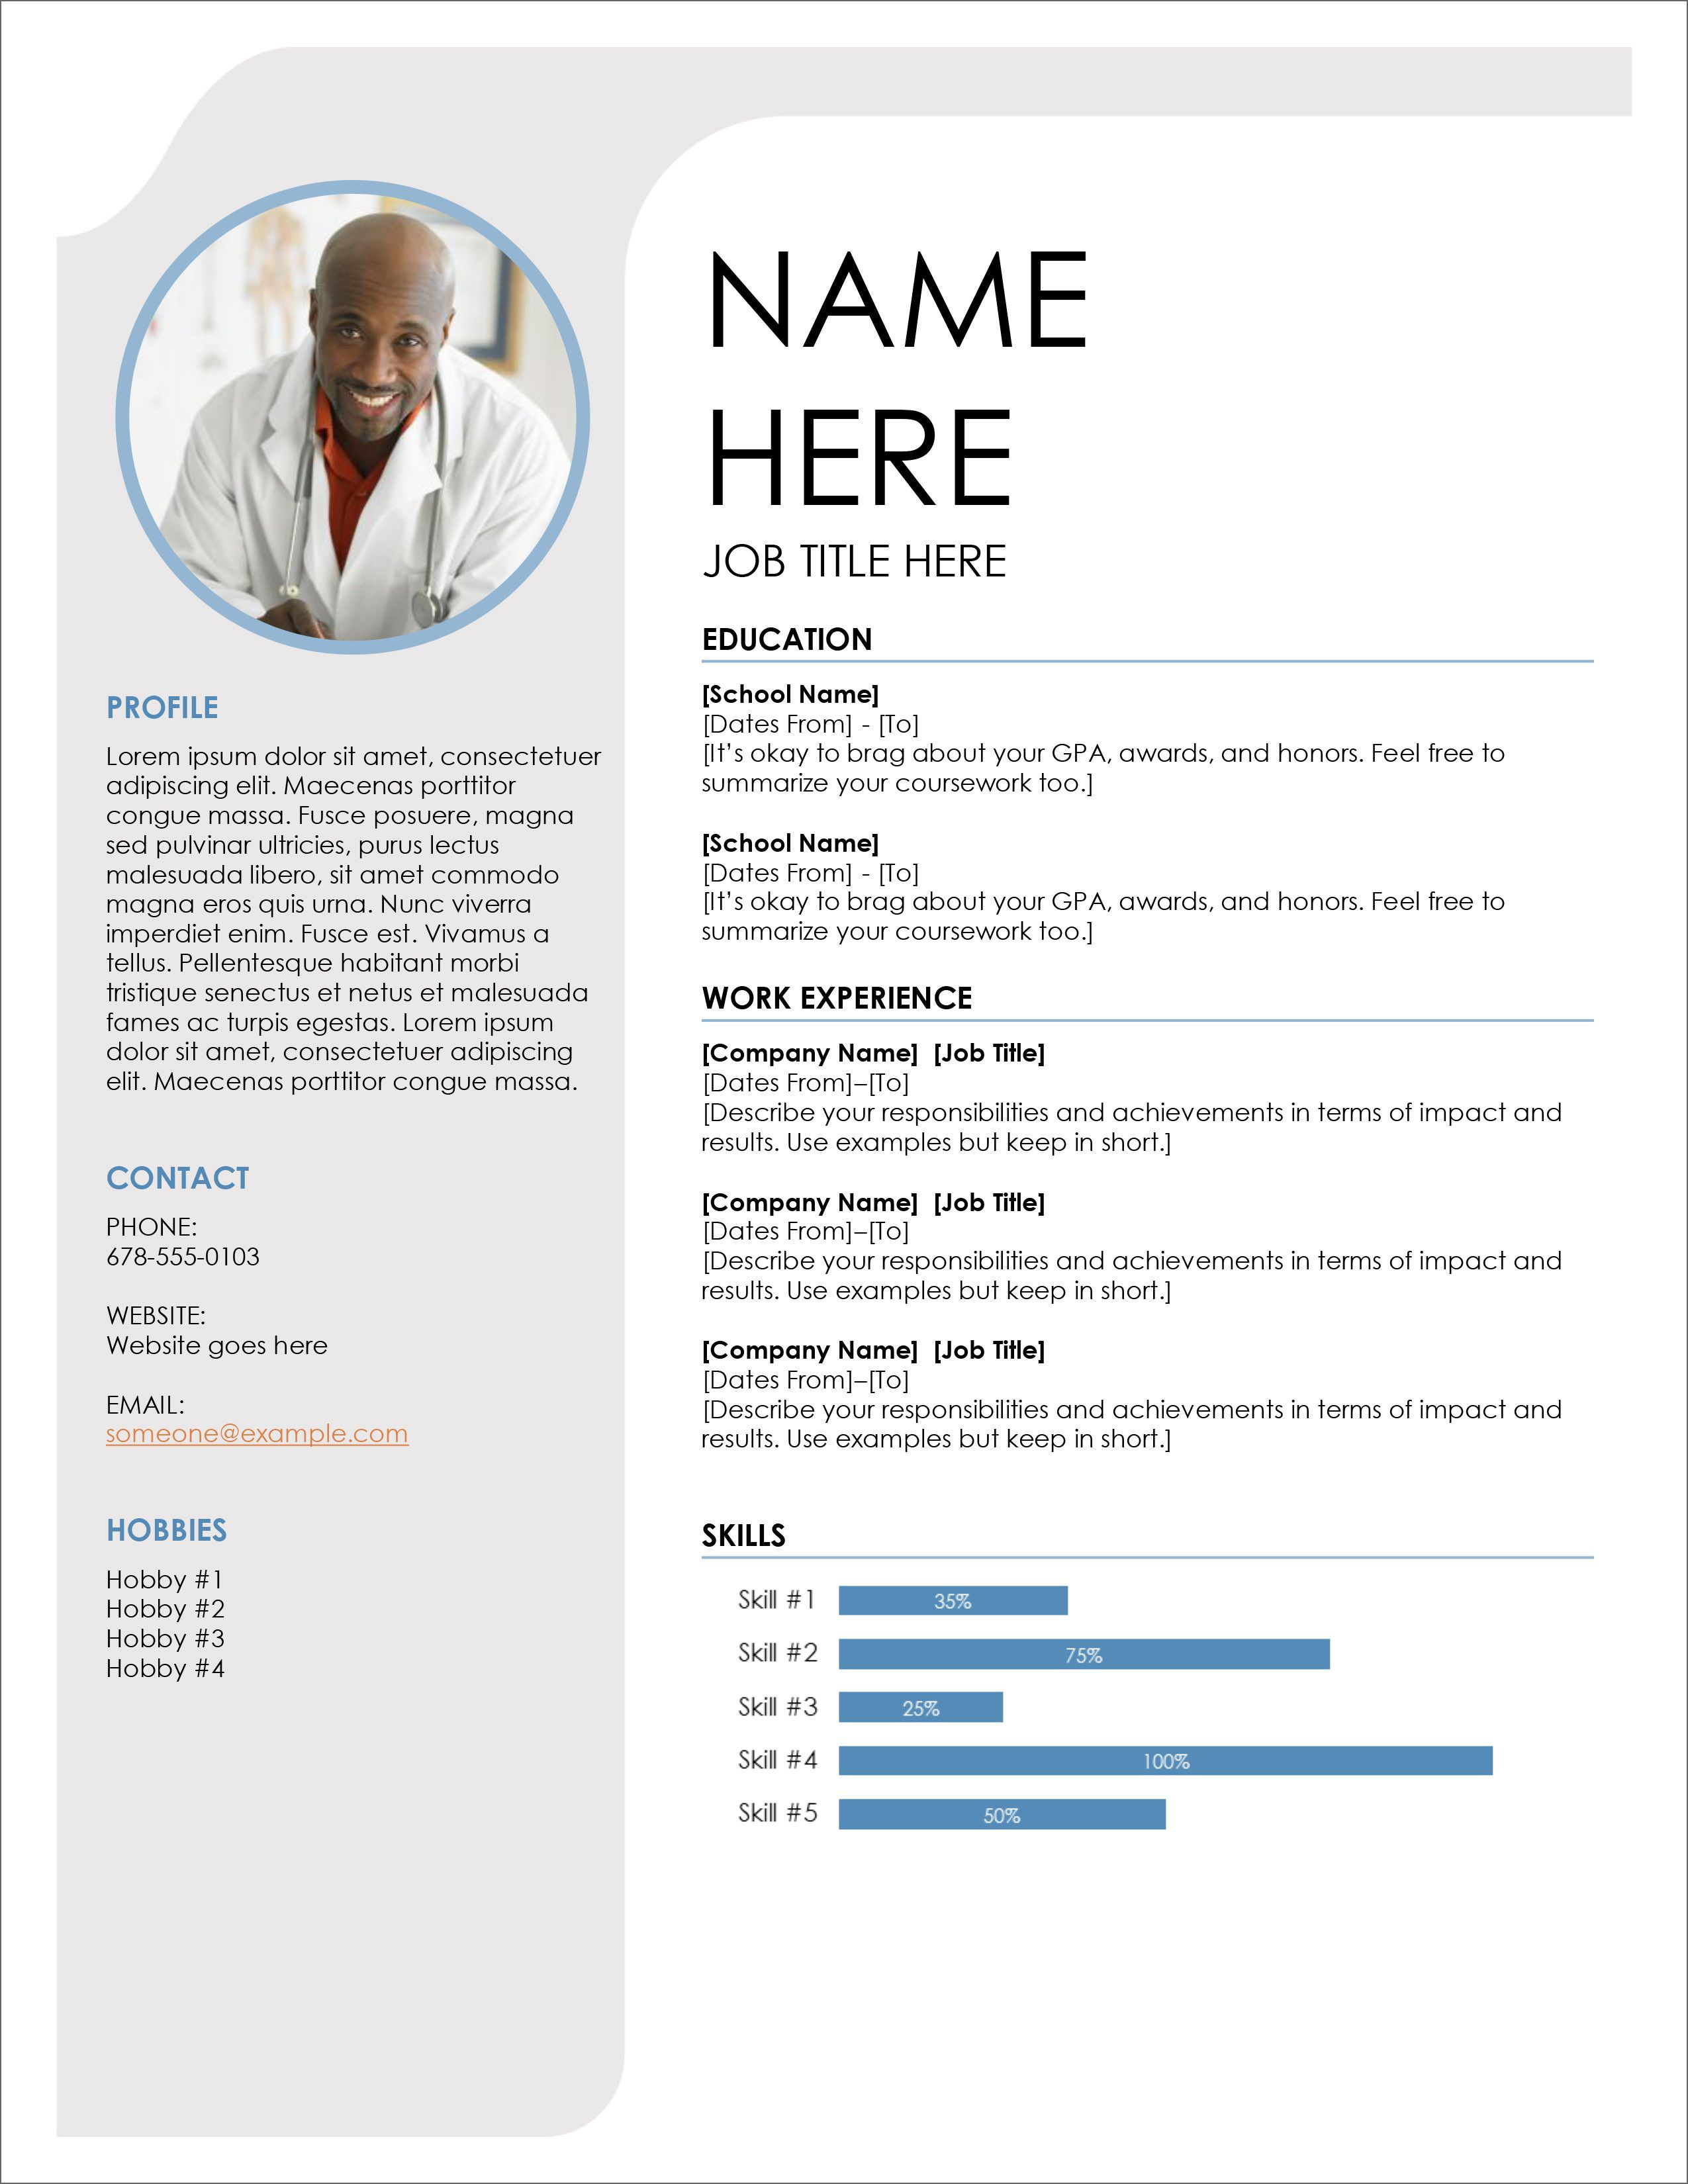 007 Magnificent Resume Template Word Free Download 2019 Photo  CvFull